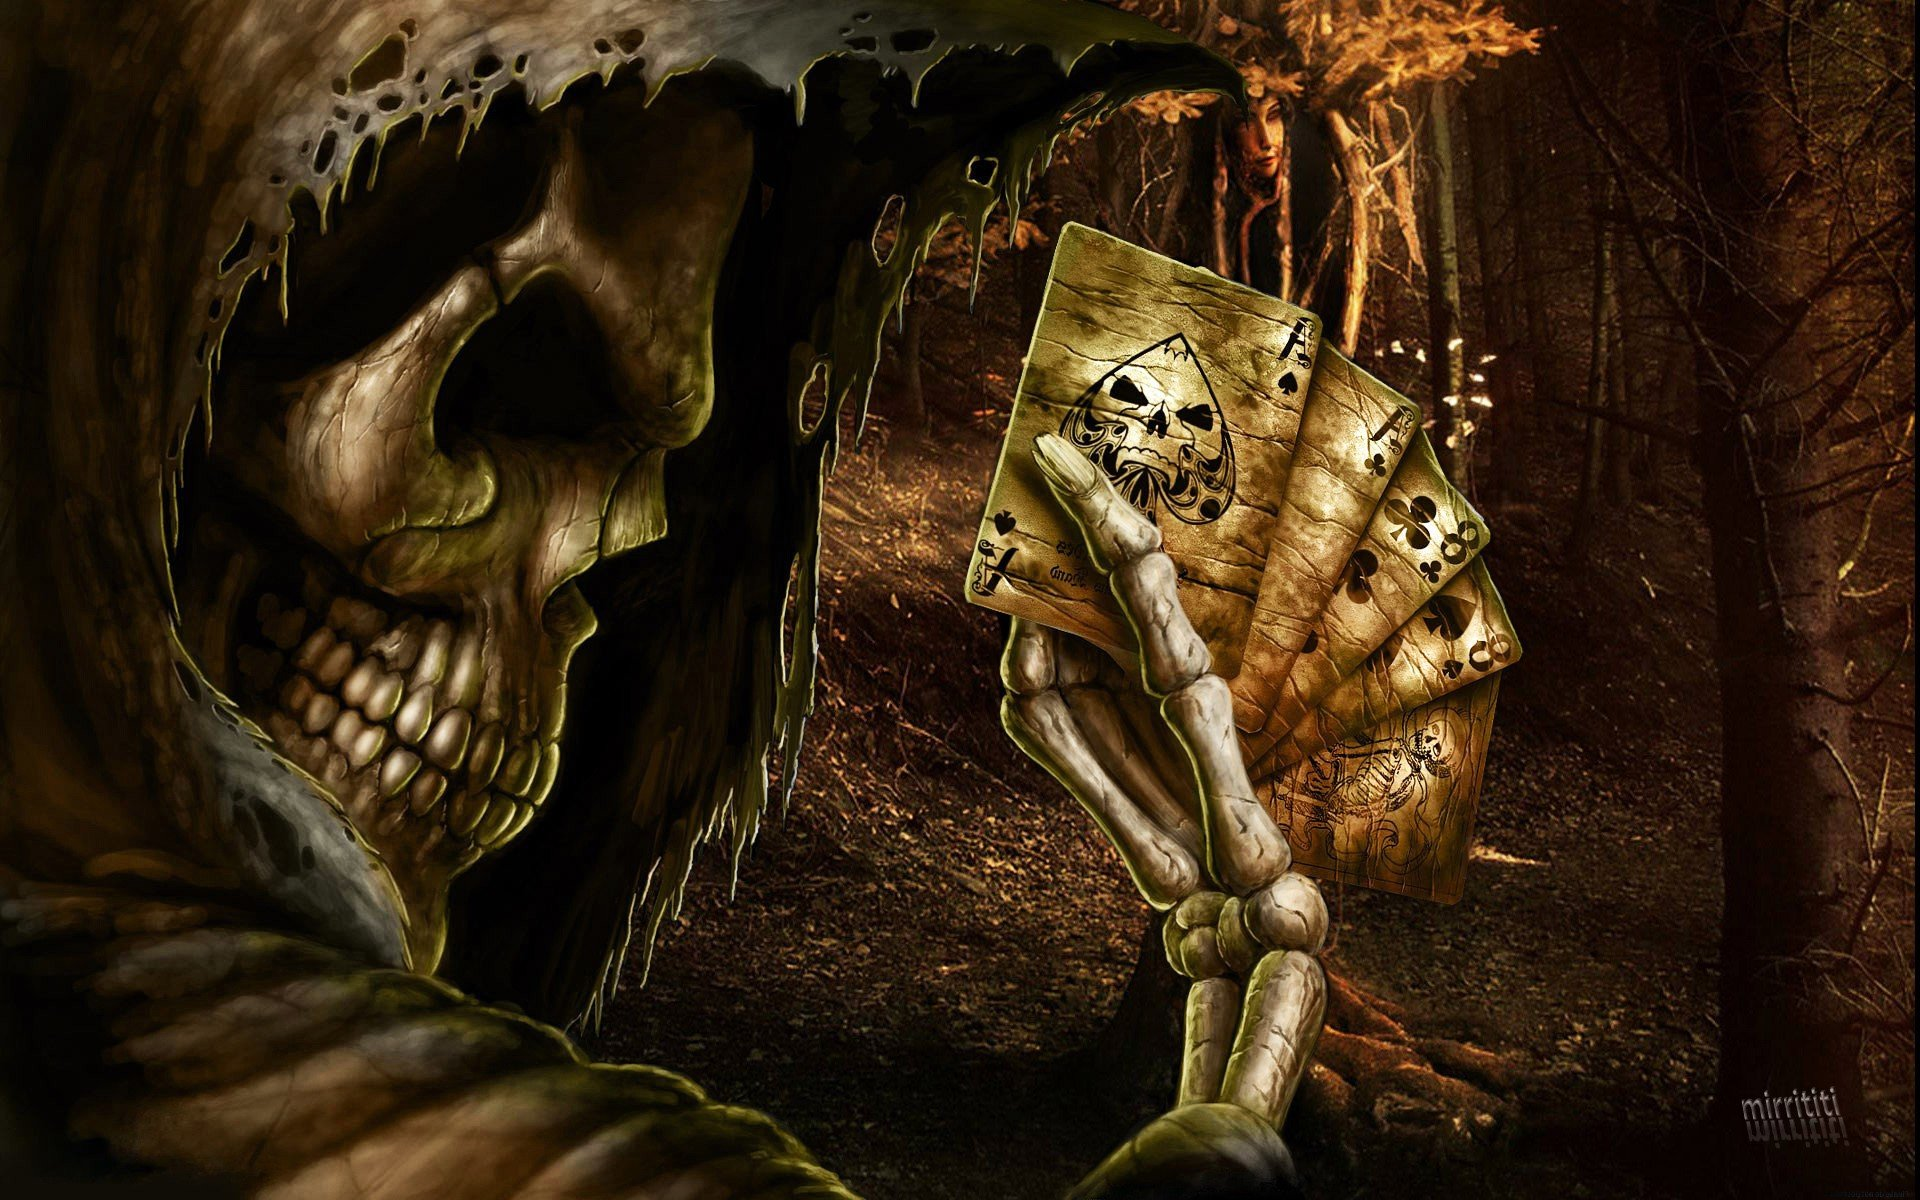 Dark Grim Reaper horror skeletons skull creepy cards games poker ace 1920x1200